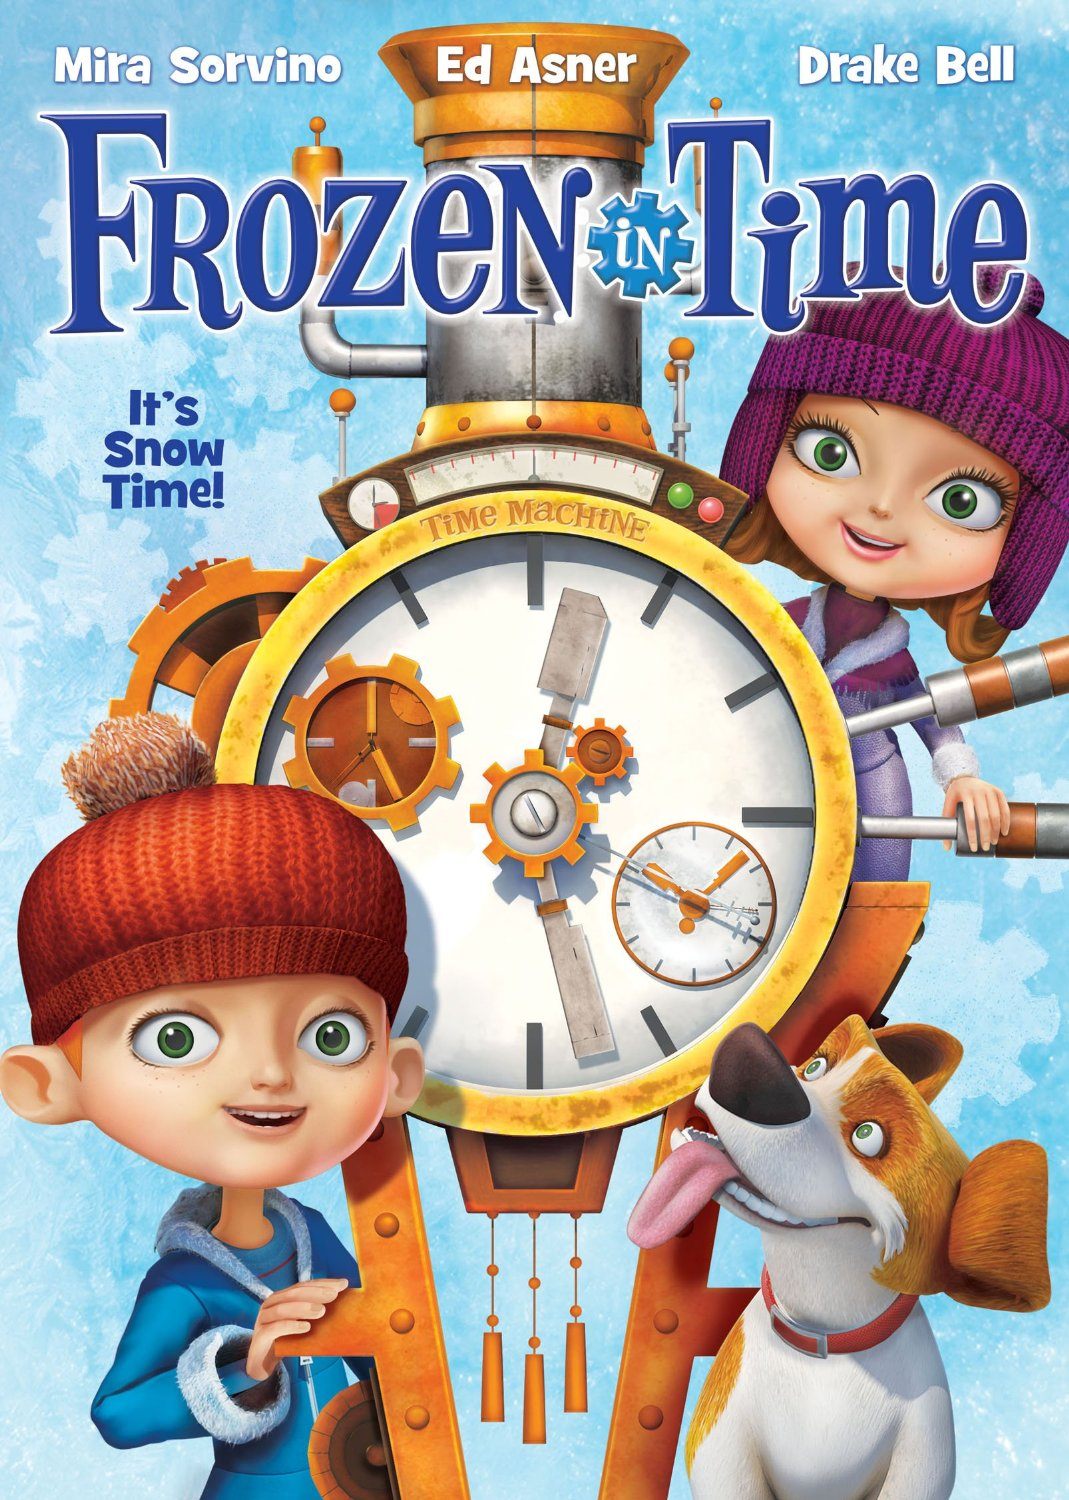 Frozen in Time (2014)